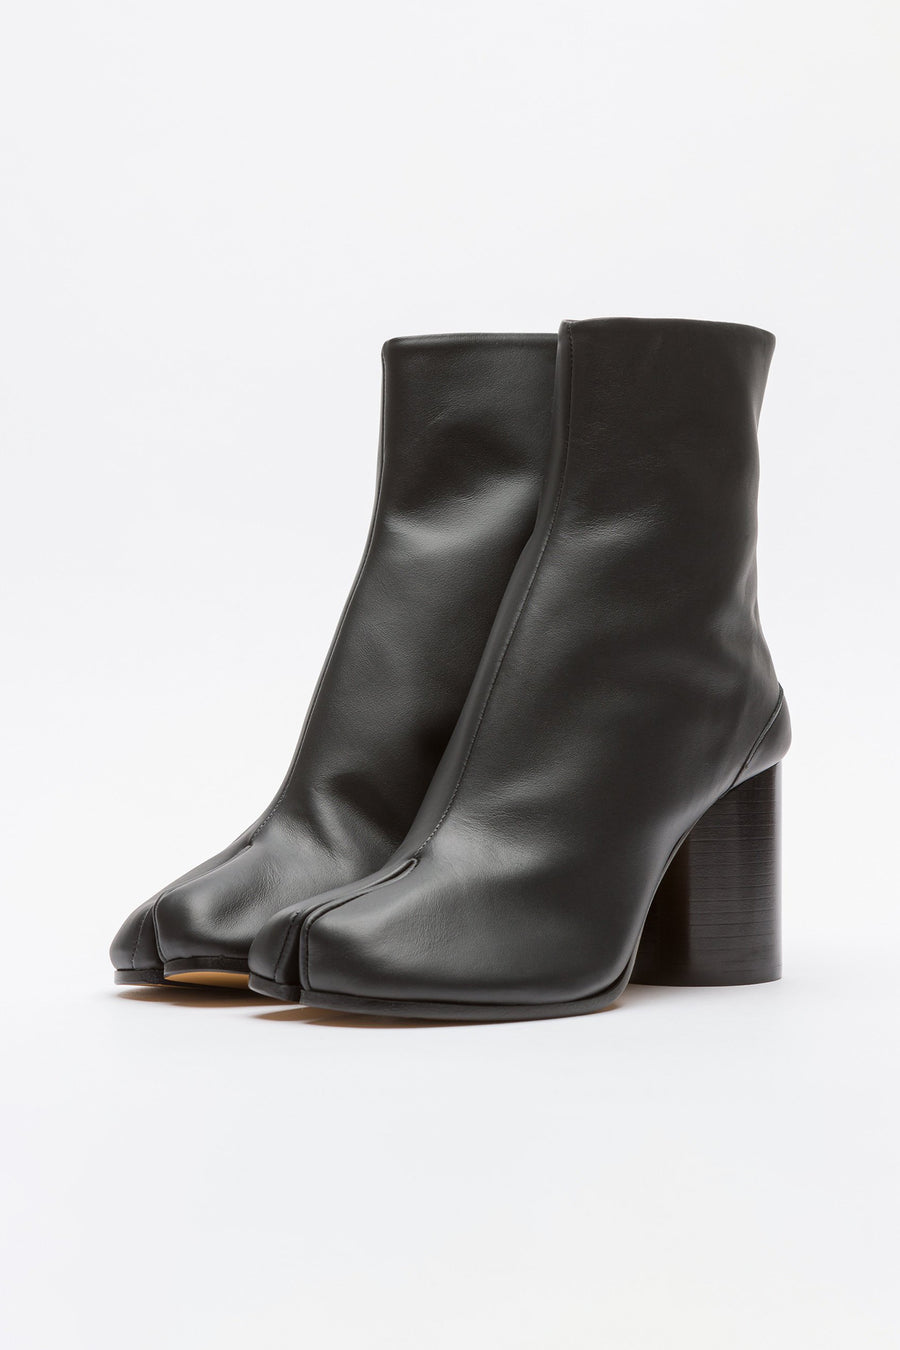 Maison Margiela Tabi Boot in Black - Notre